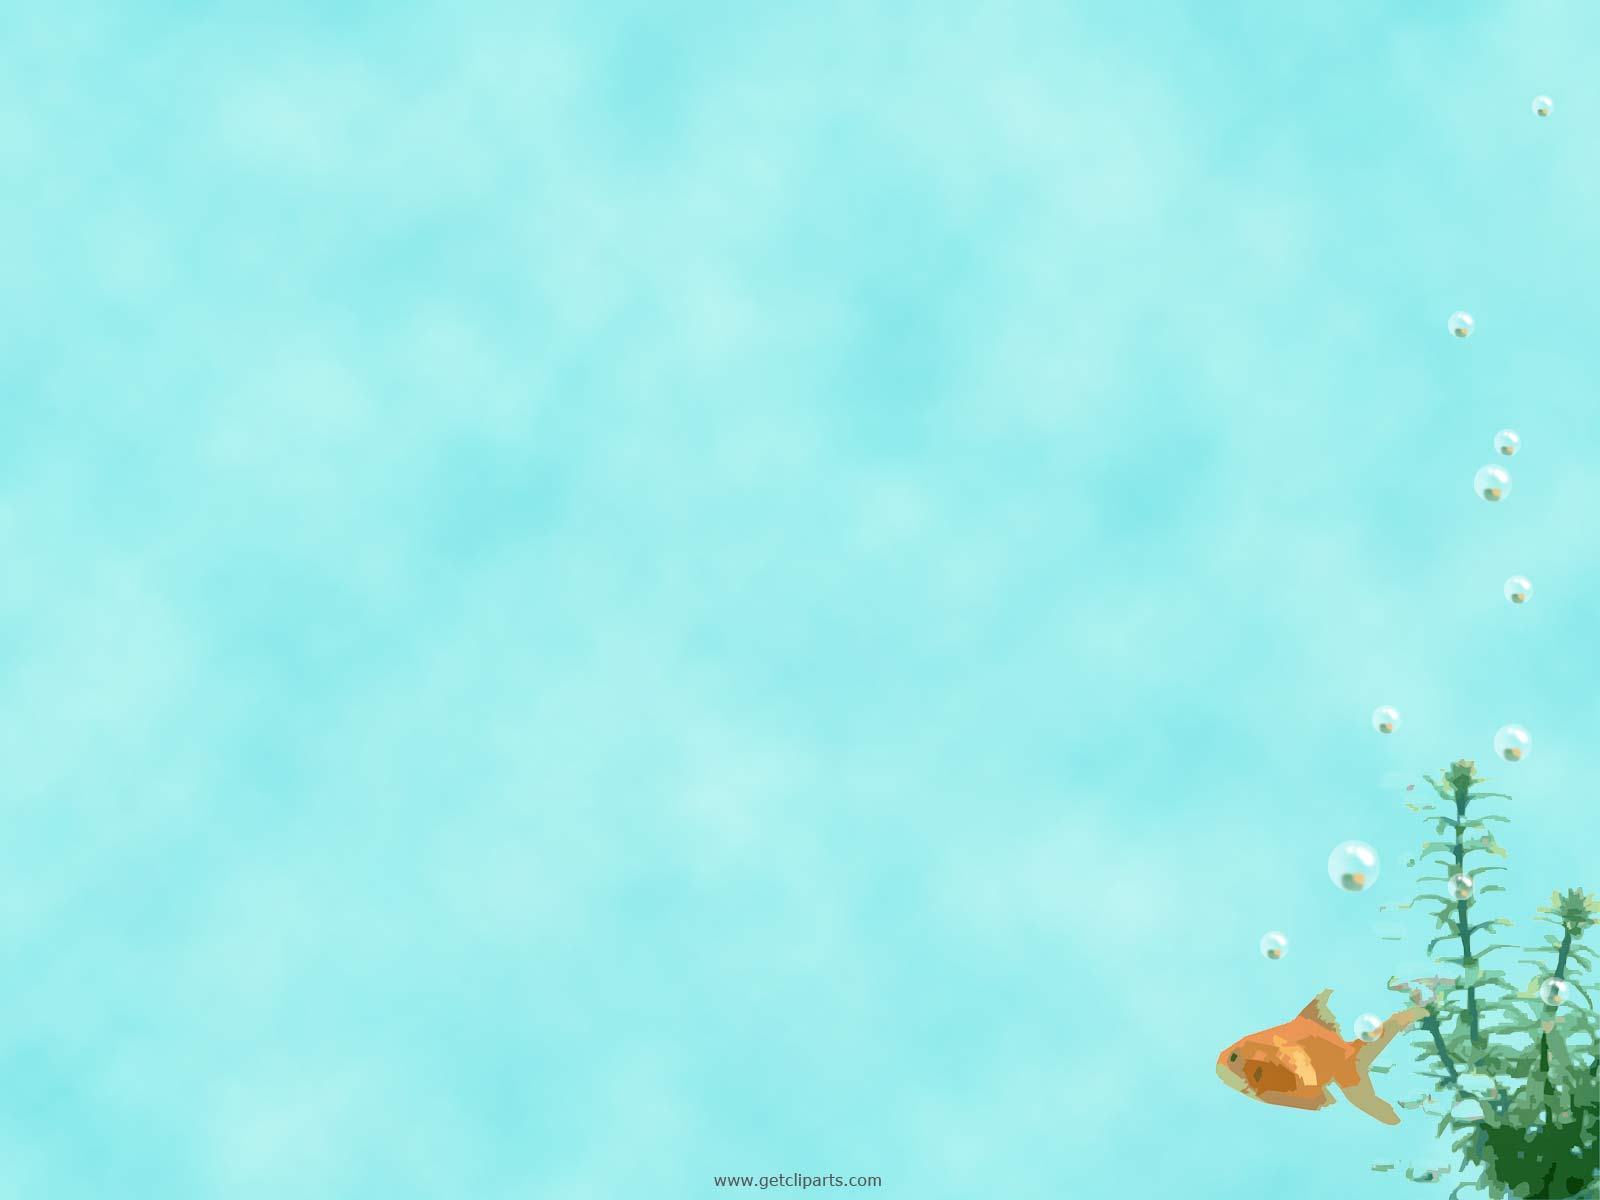 UnderWater Fish PPT Backgrounds